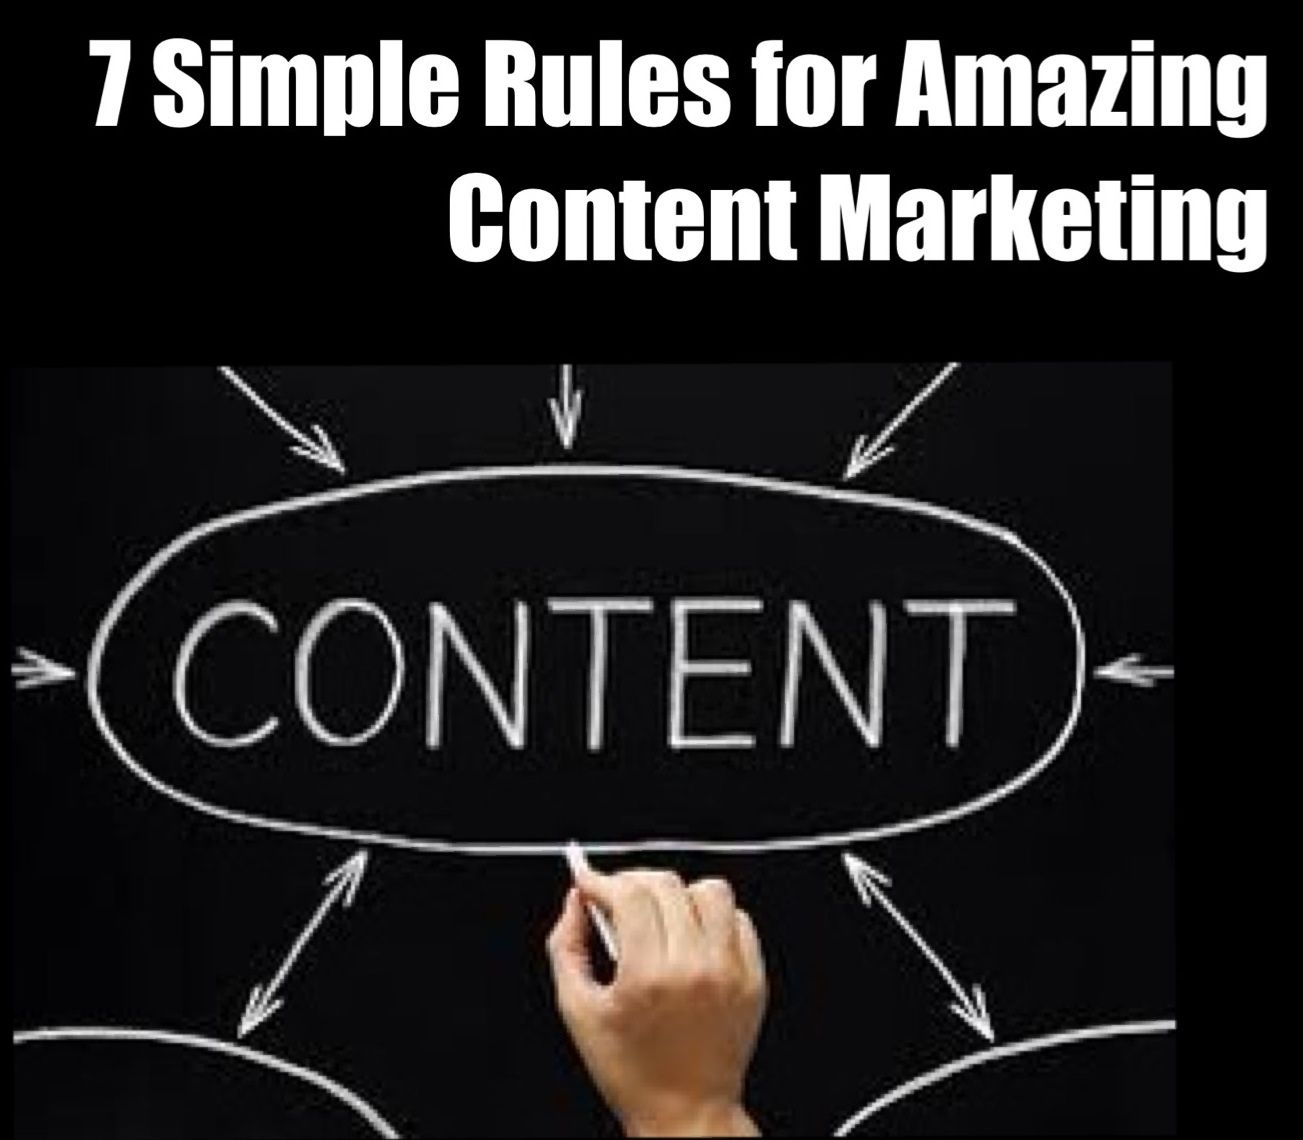 7 Simple Rules for Amazing Content Marketing. Includes online [VIDEO] from Malaysian rice company BERNAS that does an amazing job connecting emotionally. (You may need to grab your tissues)